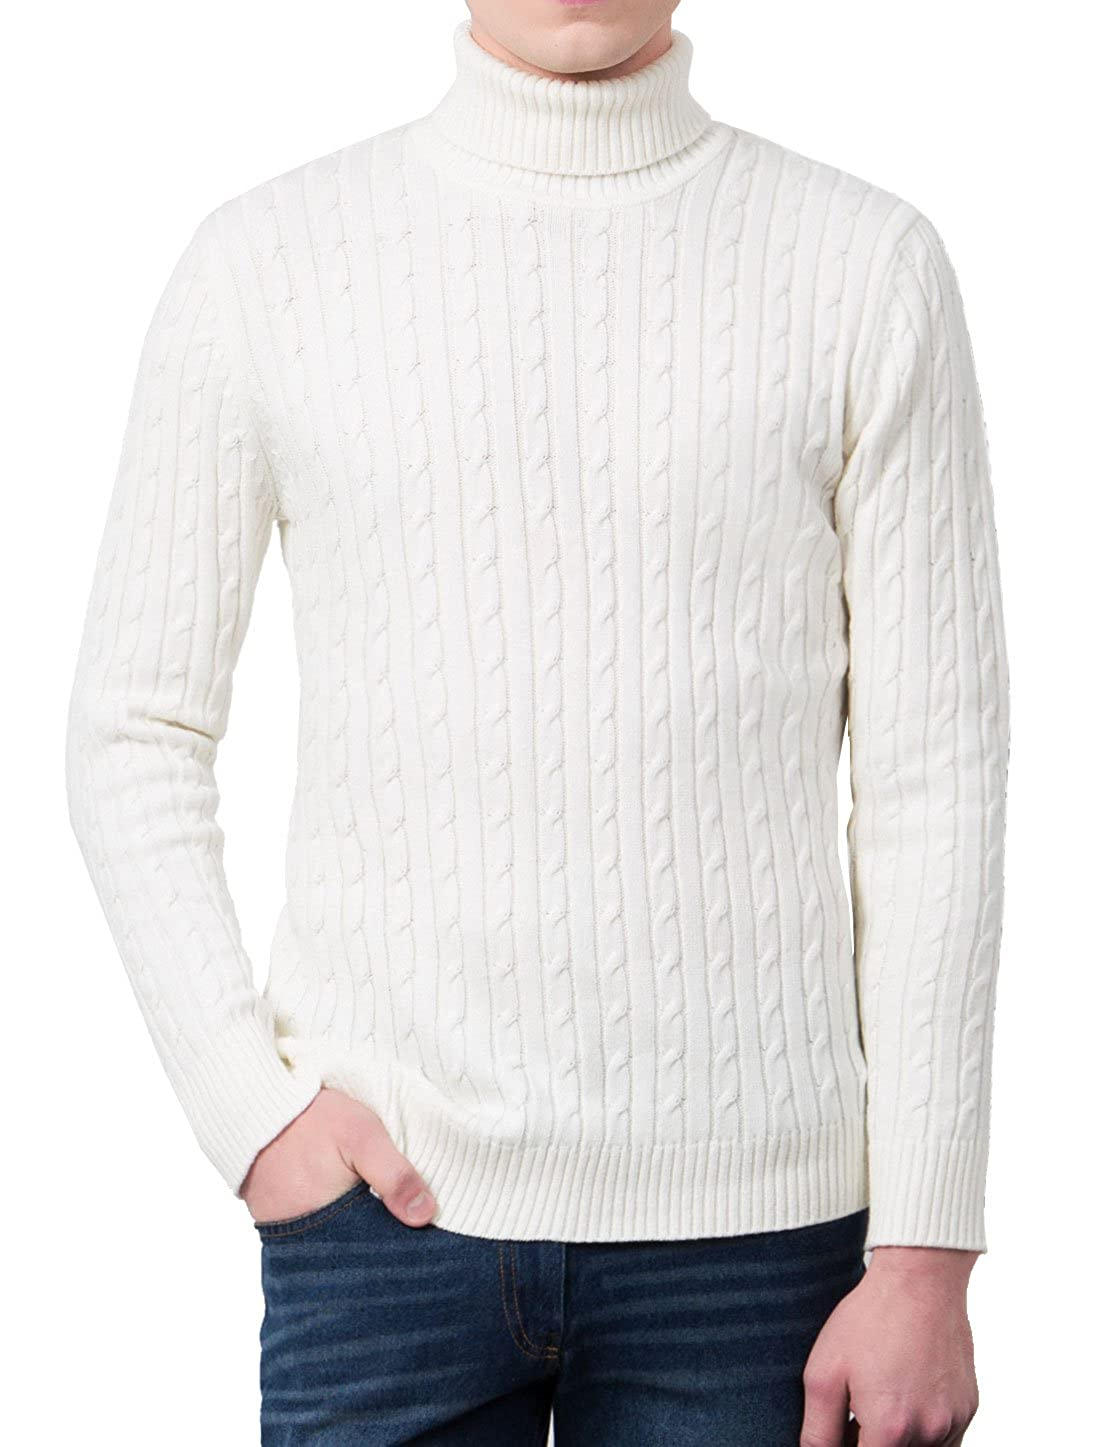 uxcell Men Casual Turtleneck Sweater Solid Knitted Cable Sweater Pullover